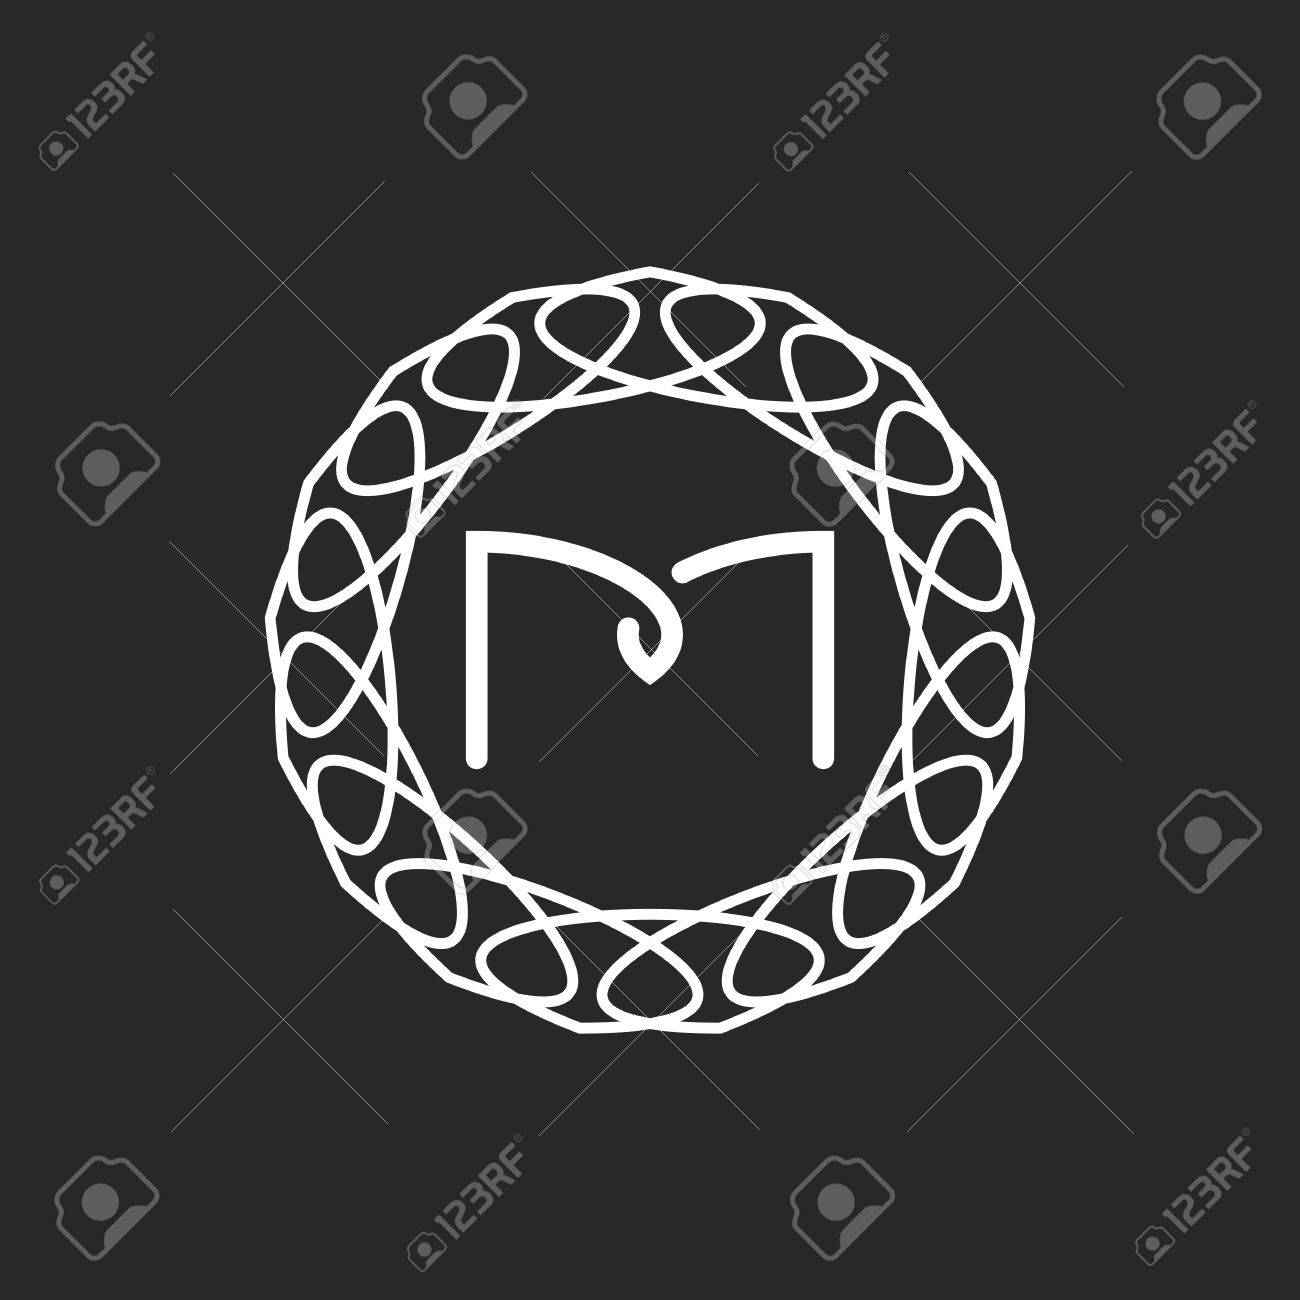 Letter M Logo Monogram Frame Mockup For Wedding Invitation Or